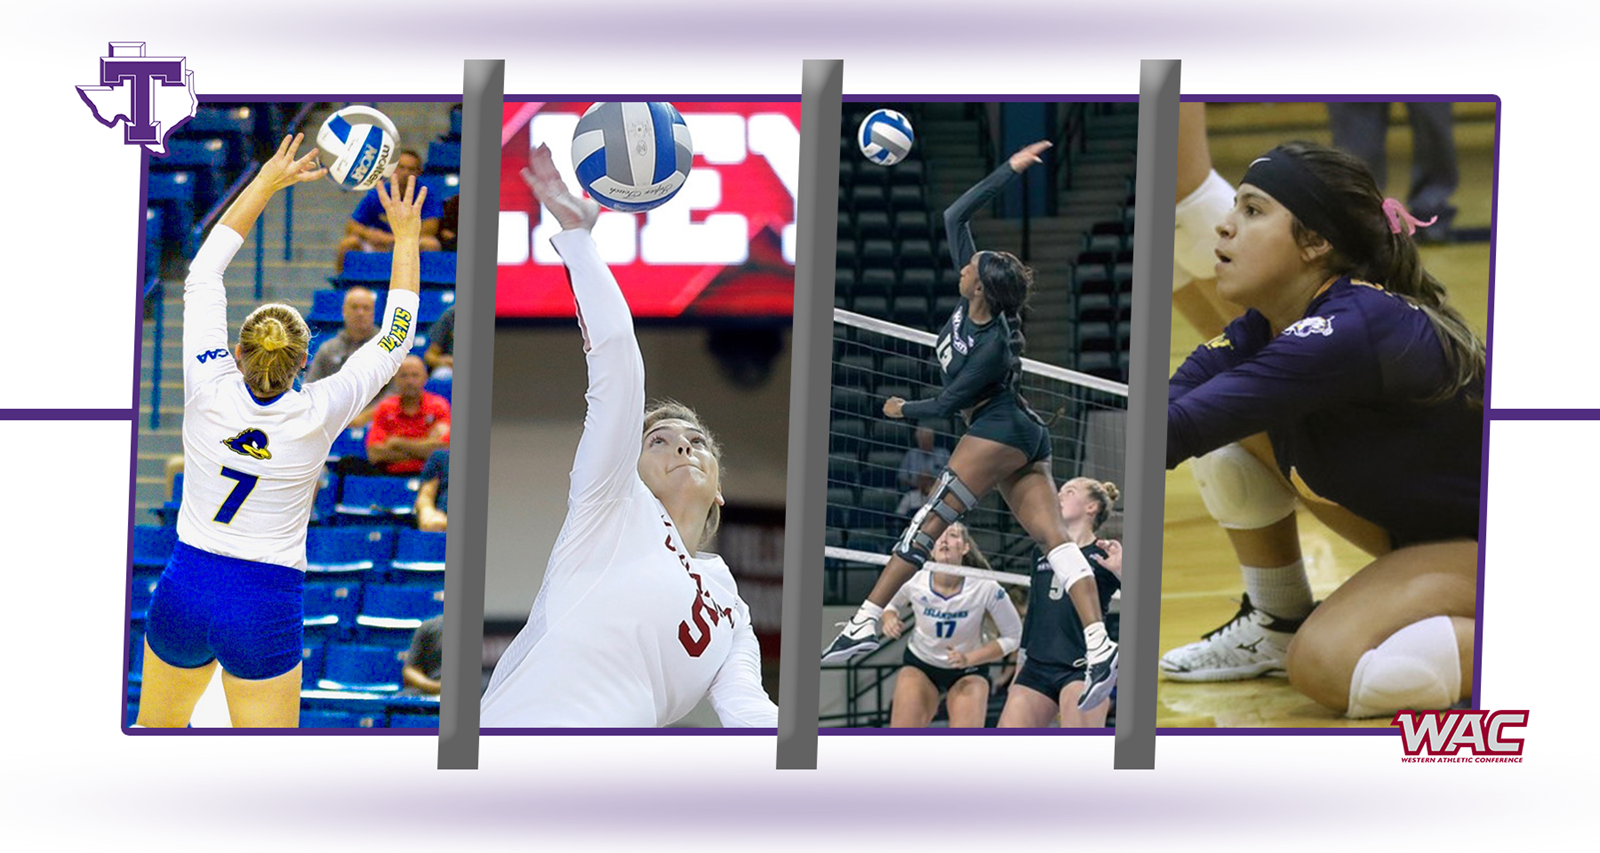 Texan Volleyball Begins First Division I Recruiting Class With Four Transfers Tarleton State University Athletics